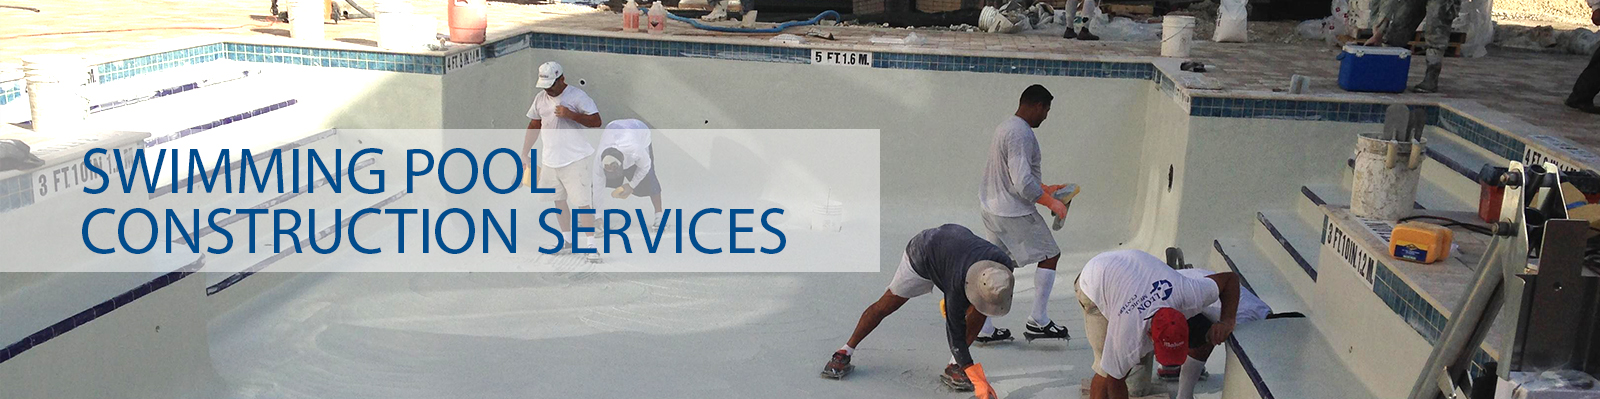 Manufacturer of fibre glass swimming pool dg designs for Swimming pool construction services